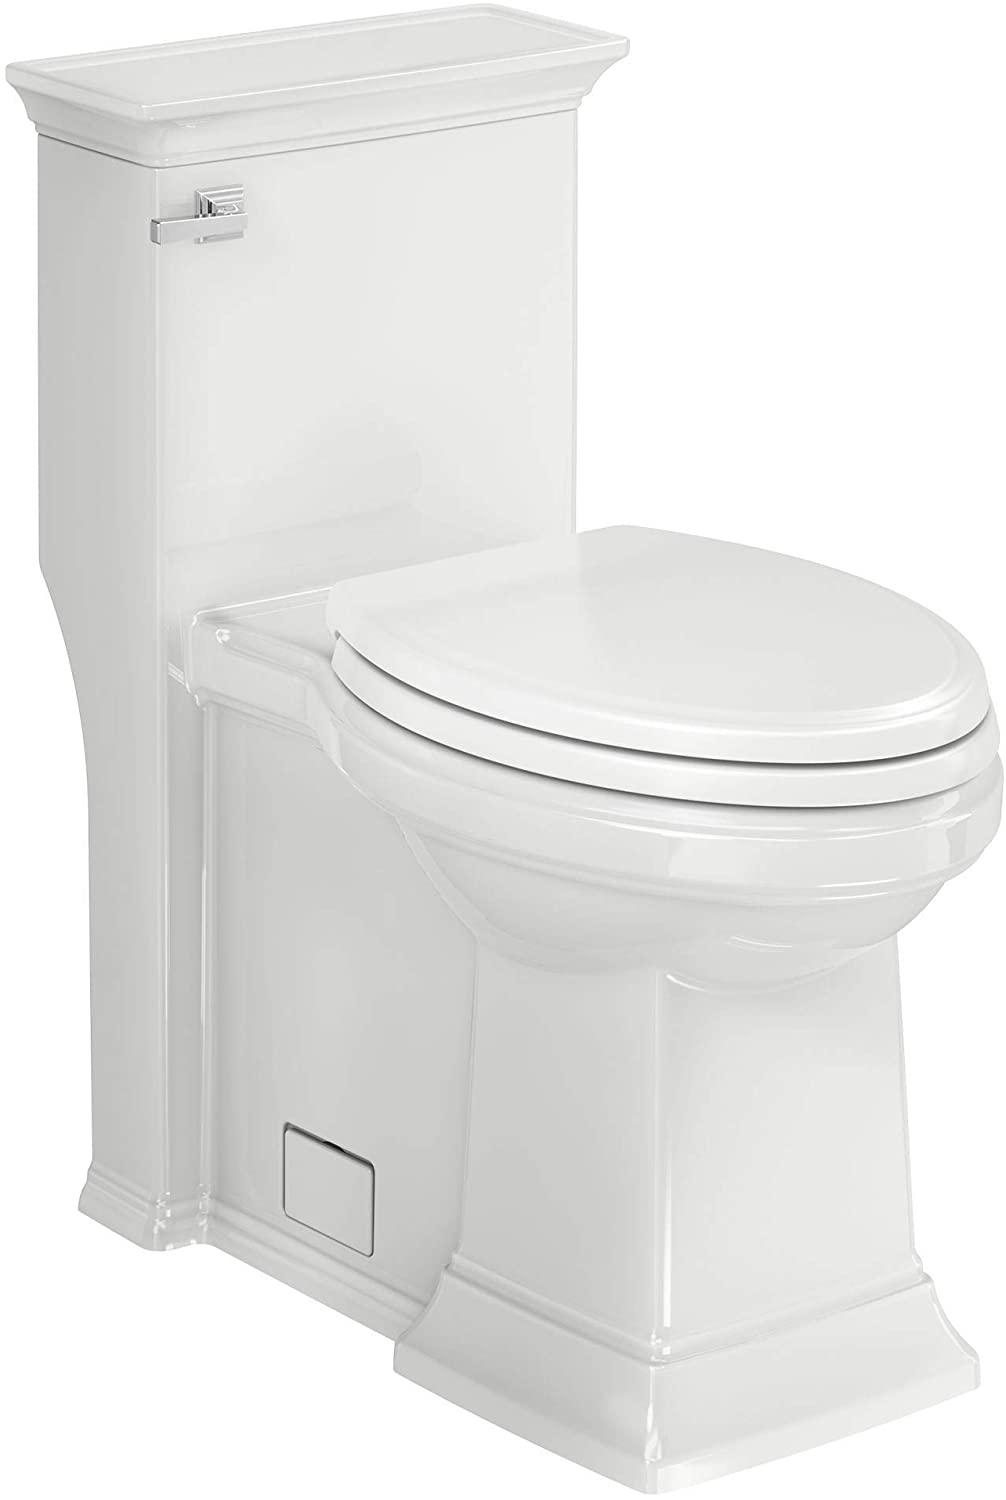 American Standard Town Square S Right Height Elongated One-Piece Toilet